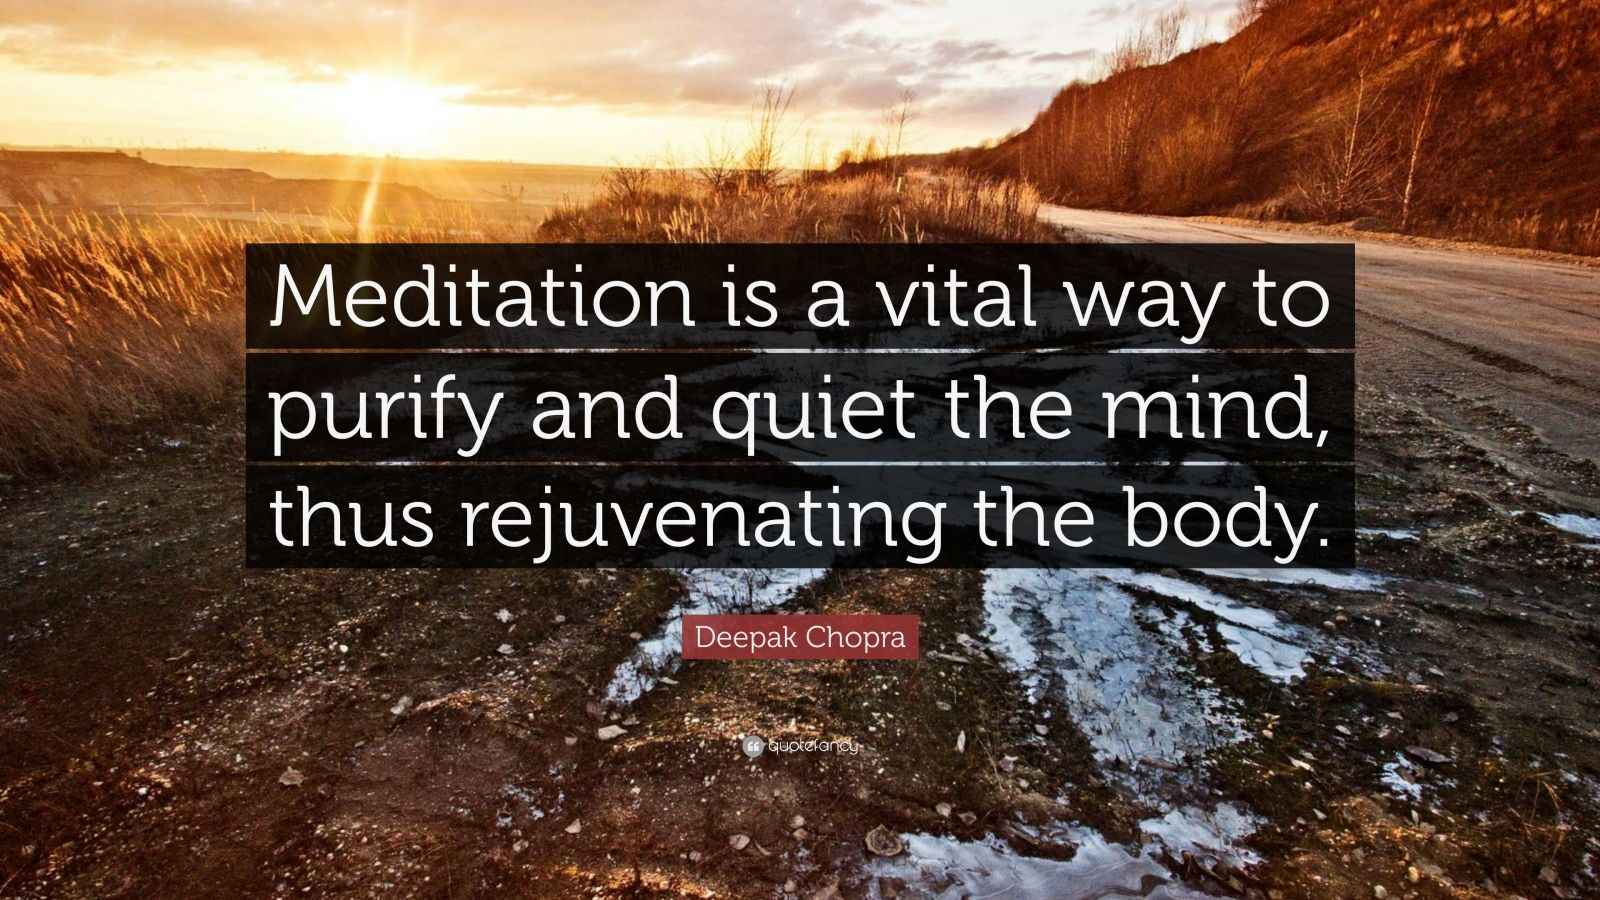 """Deepak Chopra Quote: """"Meditation is a vital way to purify and quiet the mind, thus rejuvenating the body."""""""